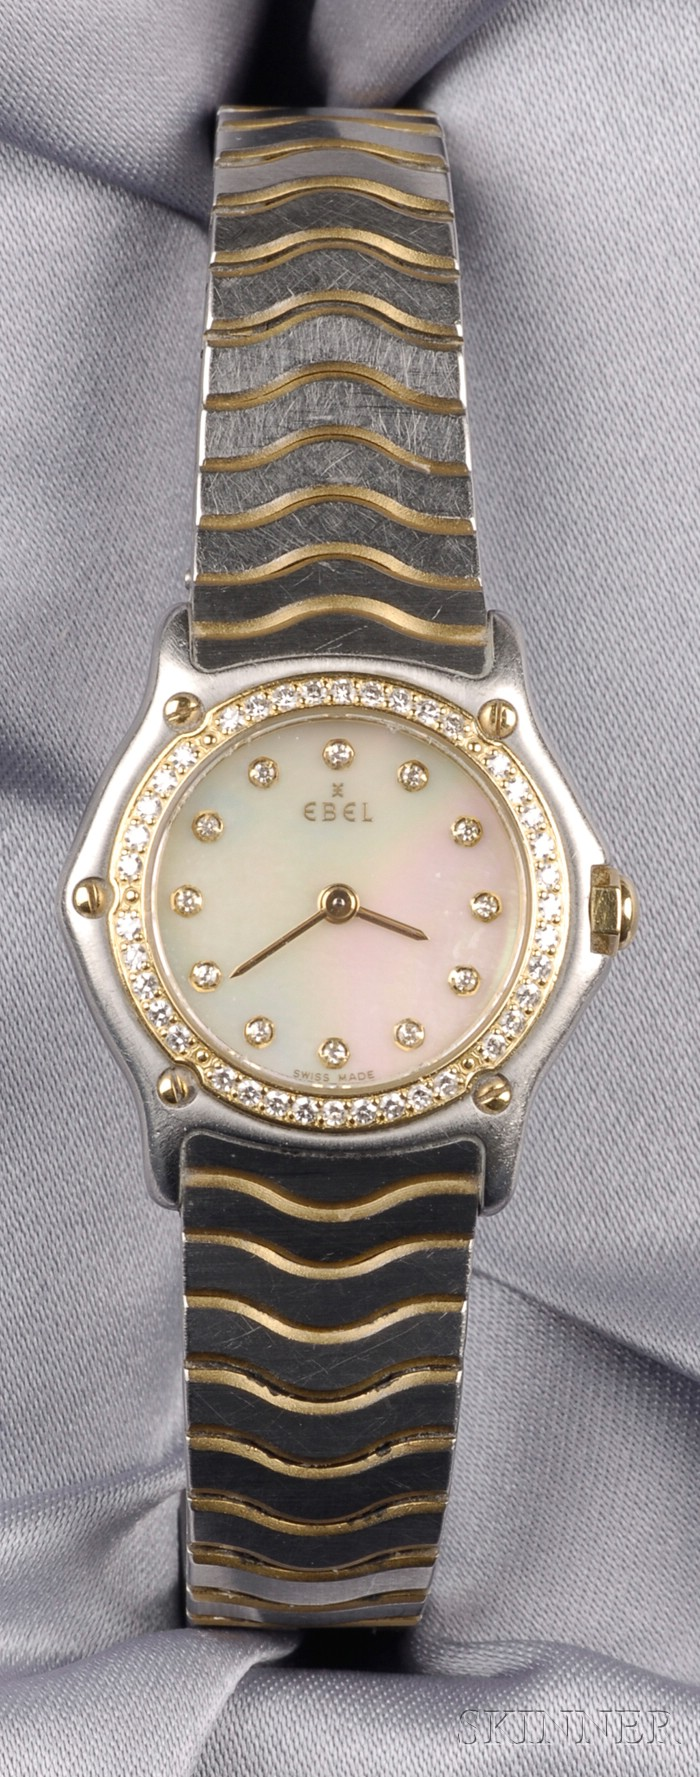 Stainless Steel and Diamond Wristwatch, Ebel